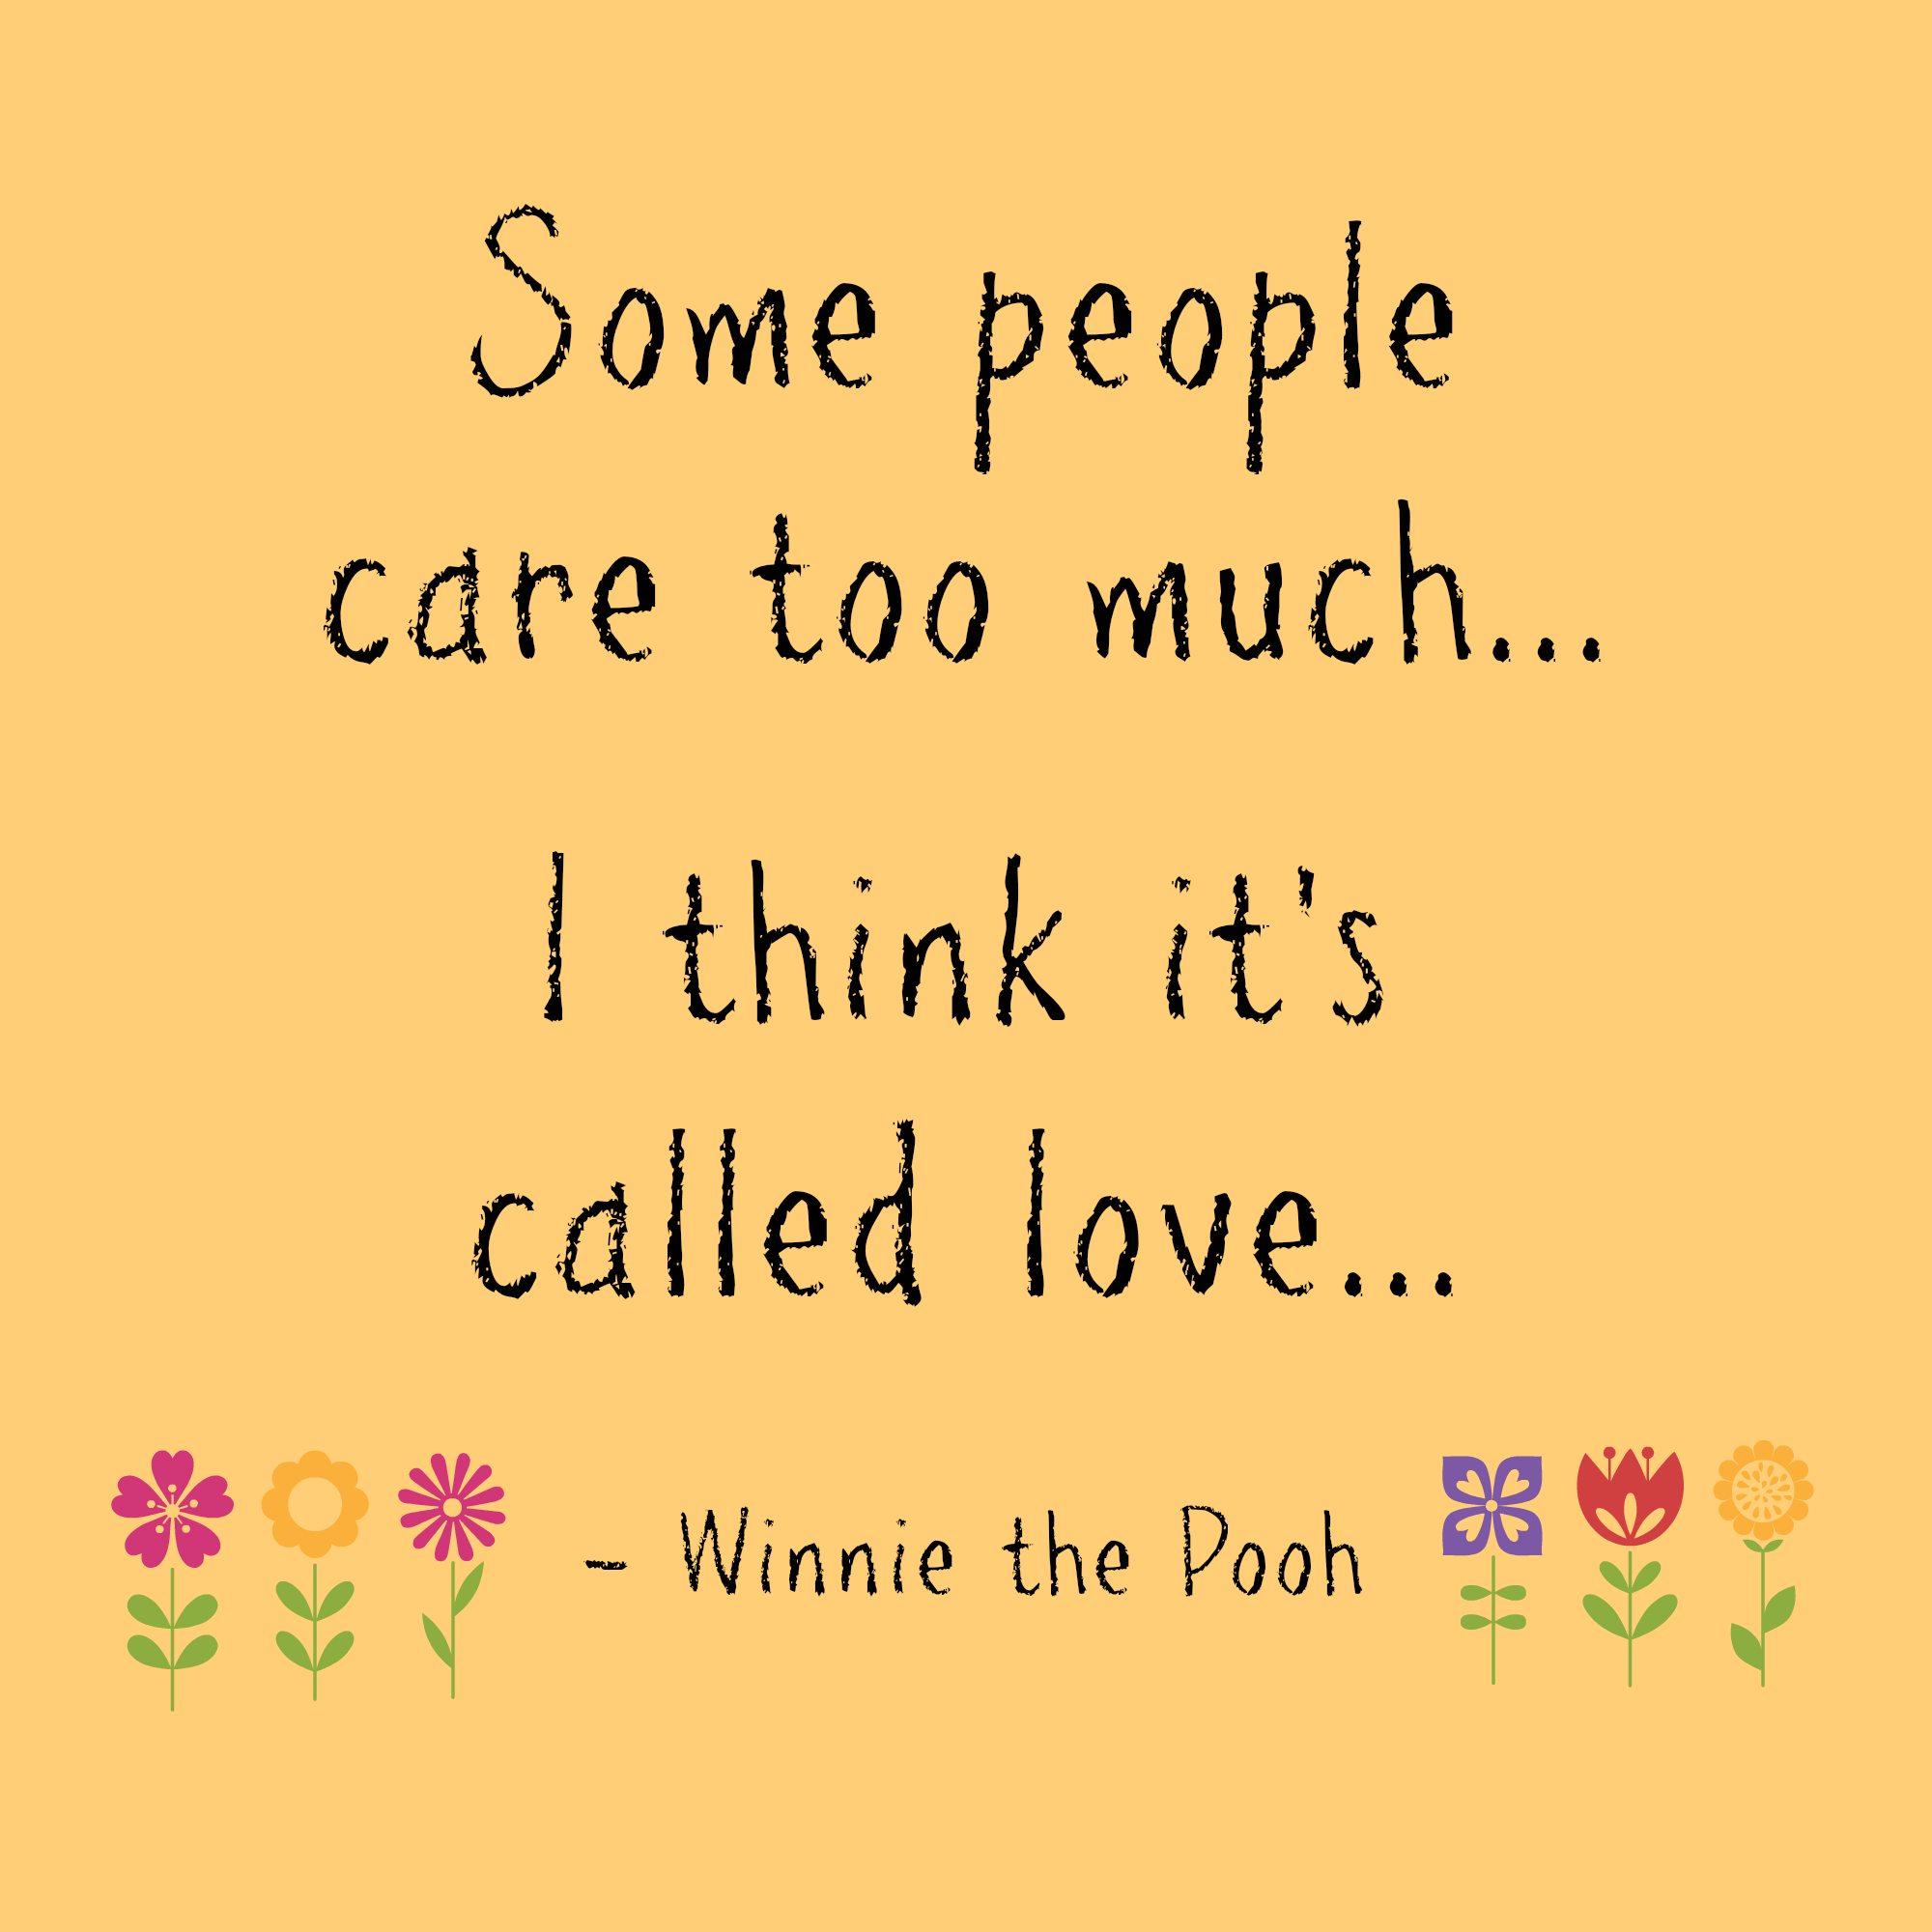 Winnie The Pooh Quotes About Love Quotesgram. Cute Kawaii Quotes. Coffee Jelly Quotes. Success Quotes Wallpaper. Hurt Quotes Marathi. Coffee Quotes Couple. Boyfriend Love Quotes Pinterest. Friendship Quotes College. Dr Seuss Quotes Friends